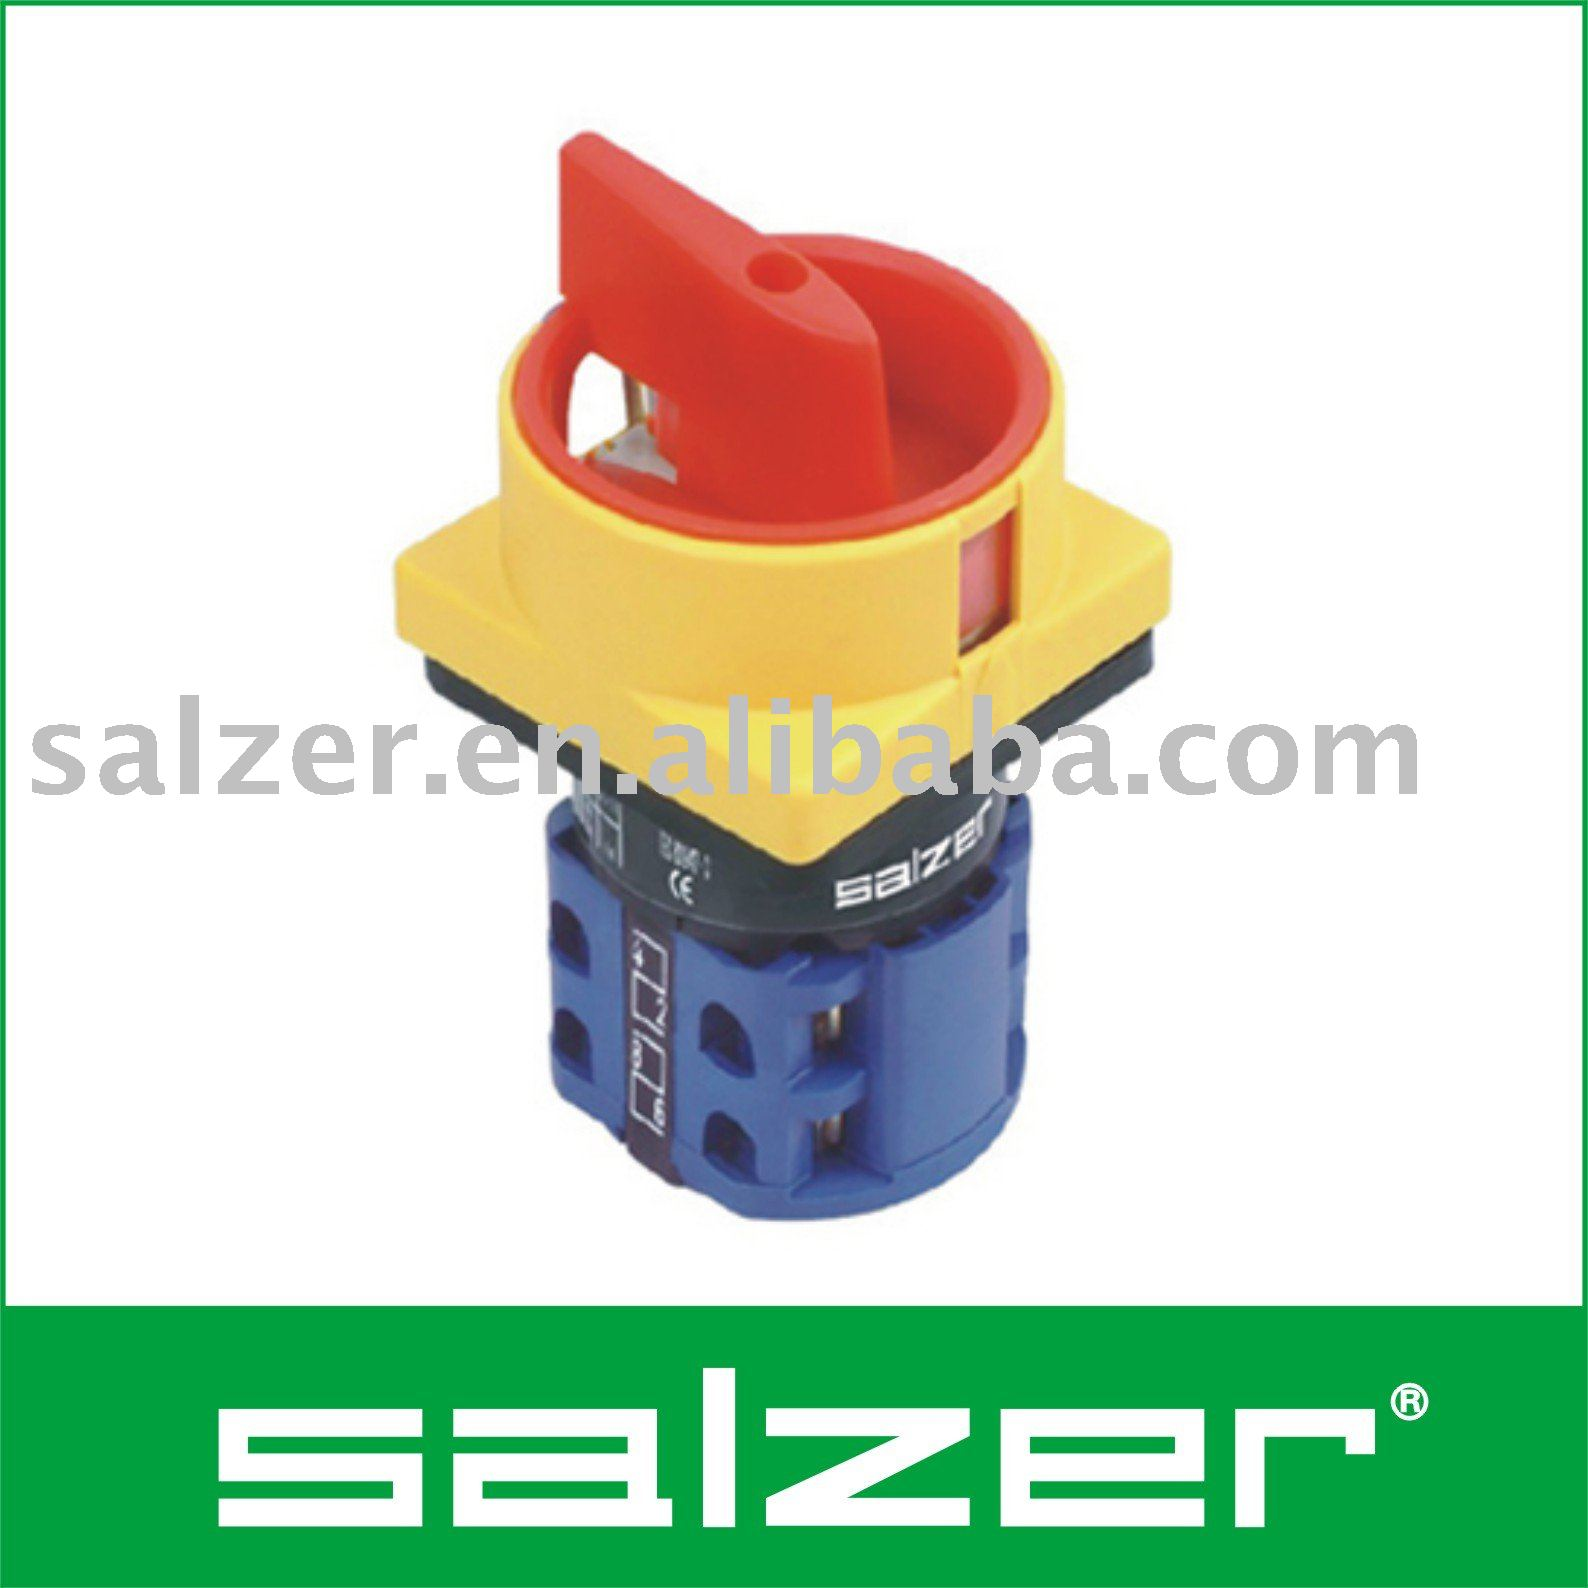 Salzer AC Isolator Switch OFF ON TUV salzer ac isolator switch off on (tuv ce cb certificate) buy salzer rotary cam switch wiring diagram at highcare.asia